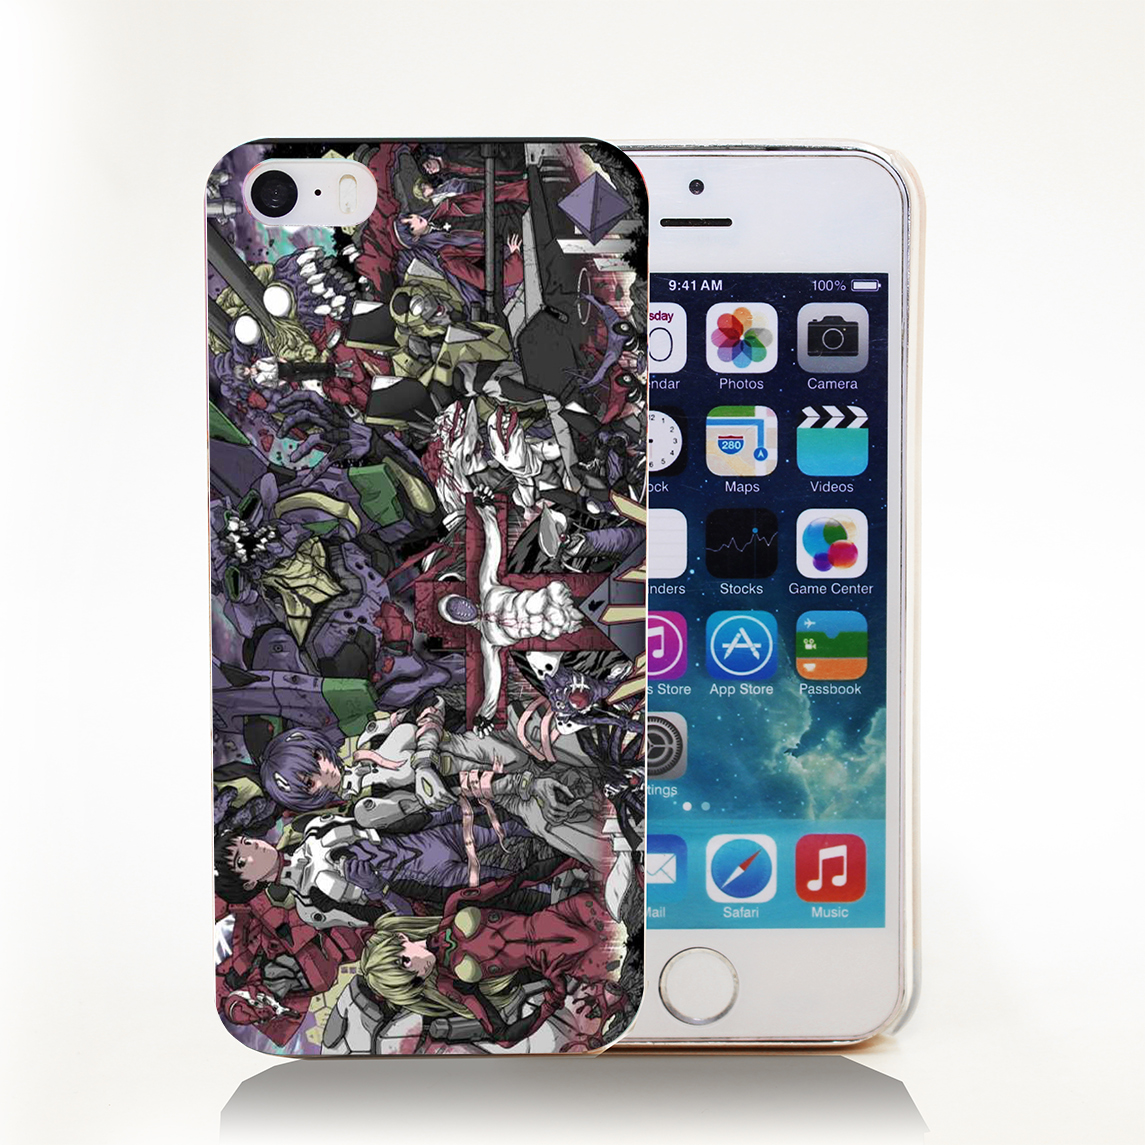 Neon Genesis Evangelion Hard Transparent Cover Case for iPhone 4 4s 5 5s 5c 6 6s Protect Phone Cases